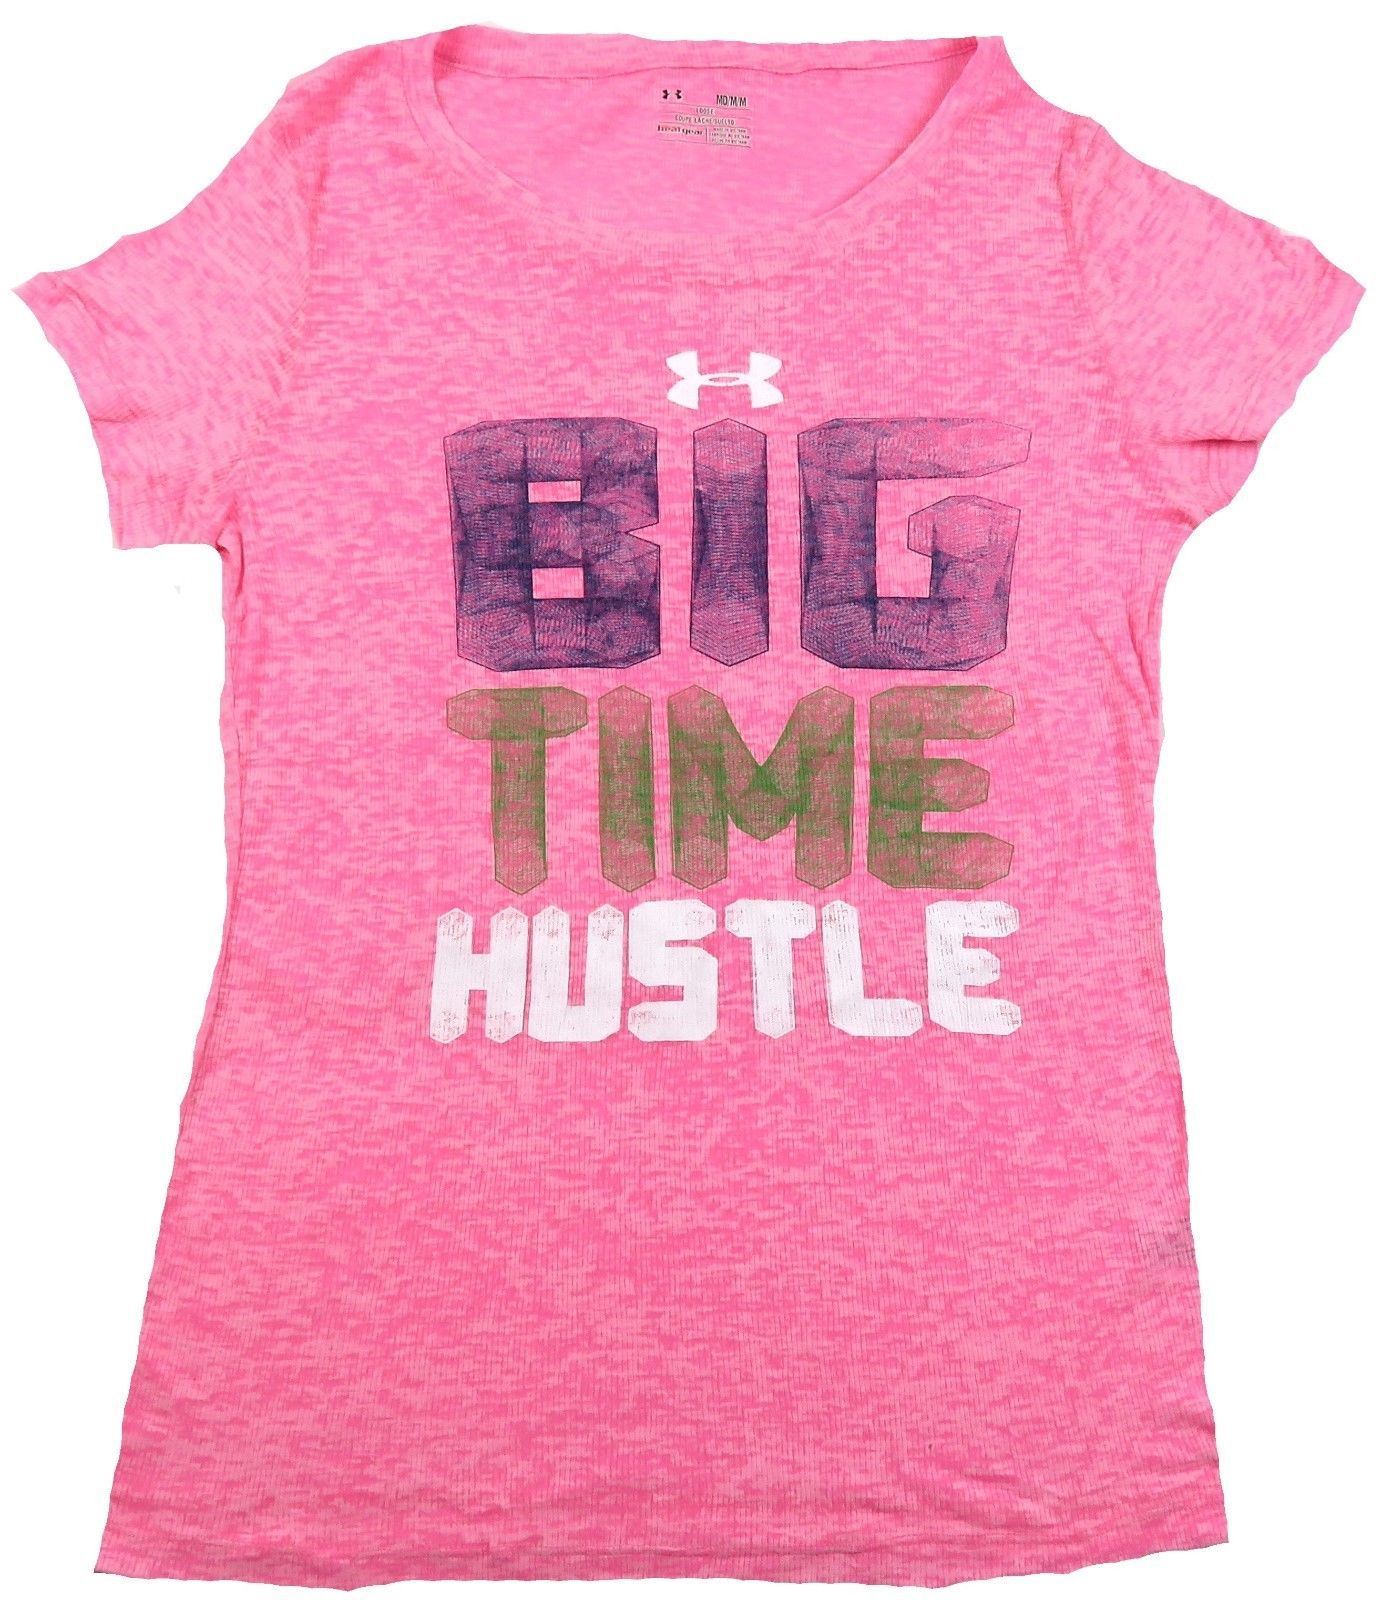 Women's Under Armour Shirt Loose Heat Gear Tee Slub Pink Big Time Hustle NEW